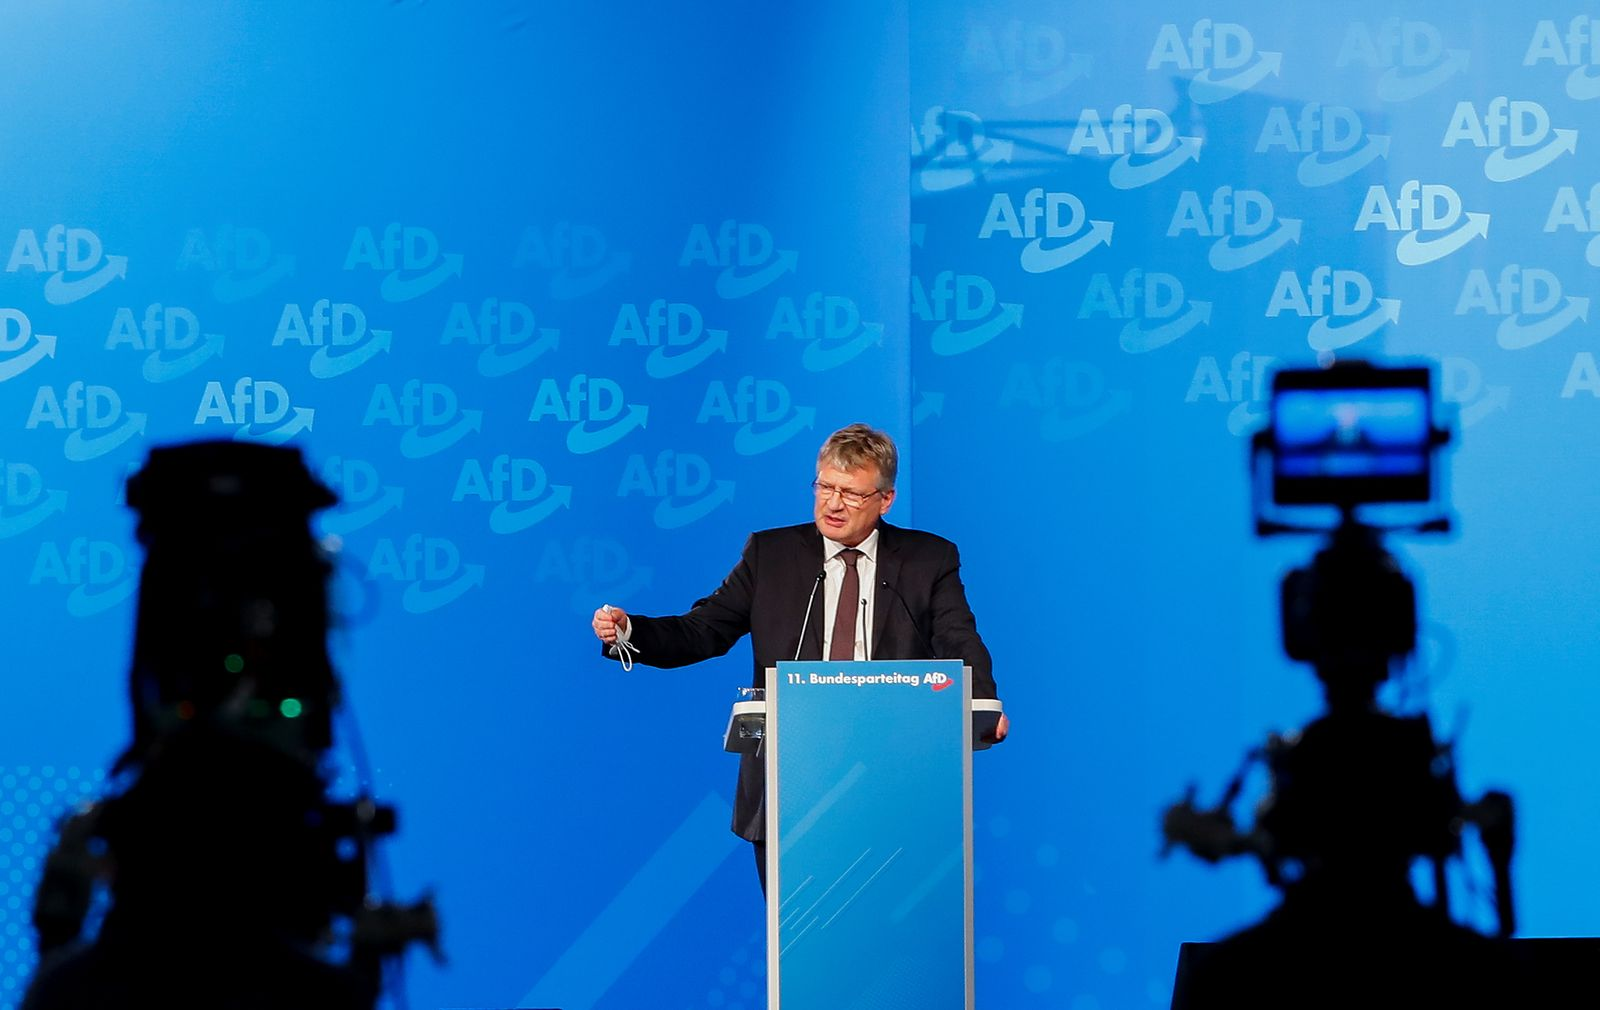 Alternative for Germany (AfD) party congress in Kalkar